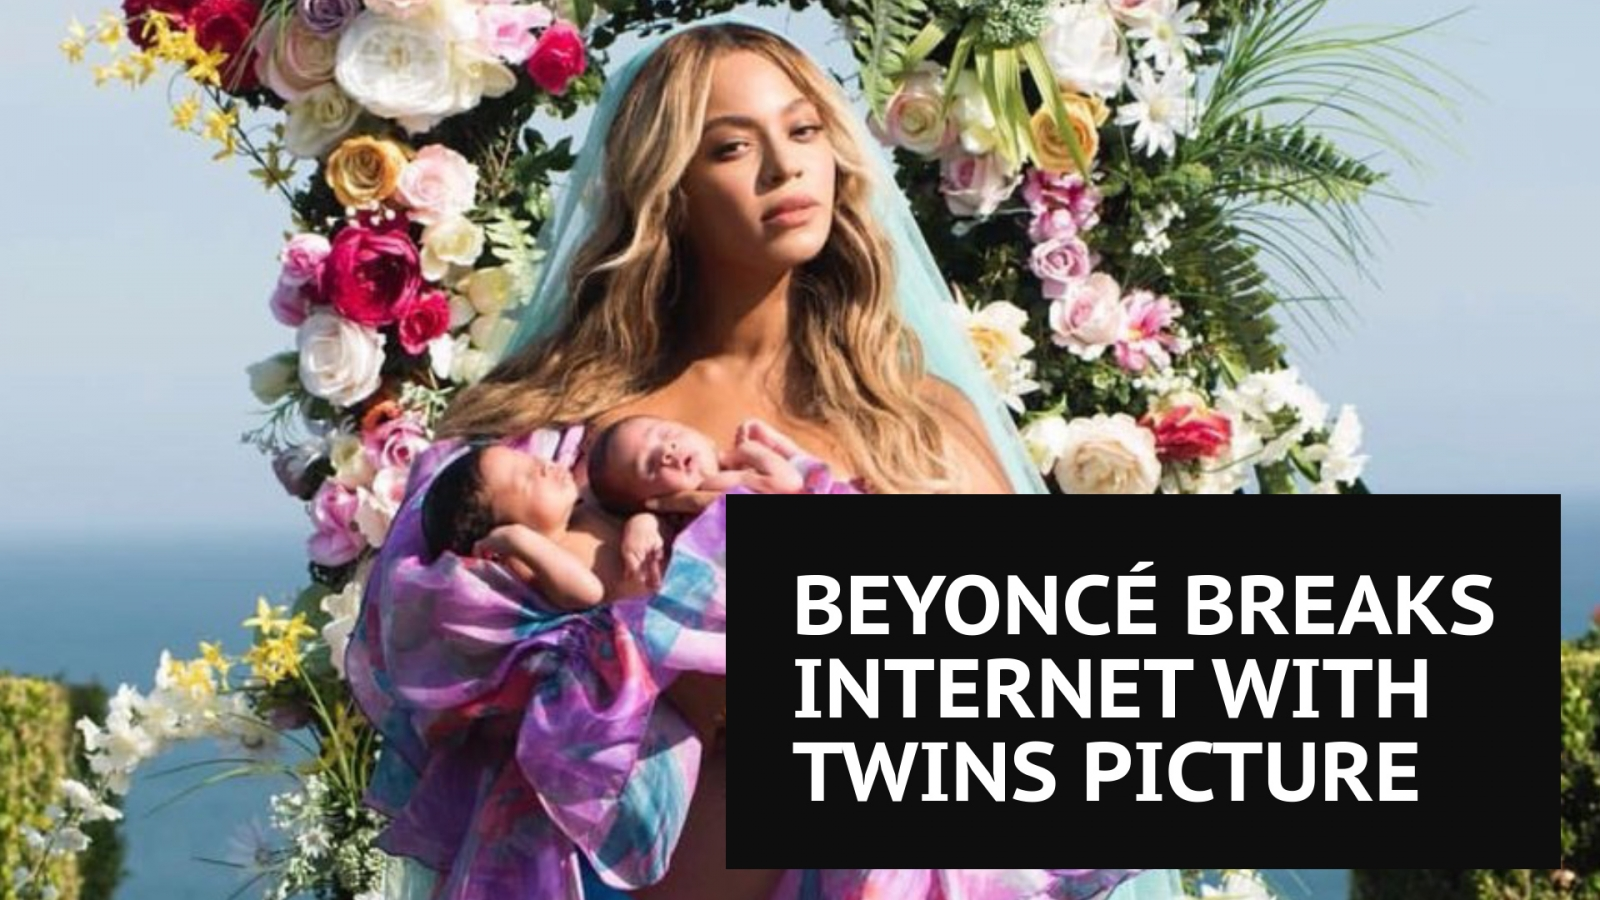 Beyonce Reveals First Photo Of Twins Sir Carter and Rumi, Beyhive Goes Into Meltdown